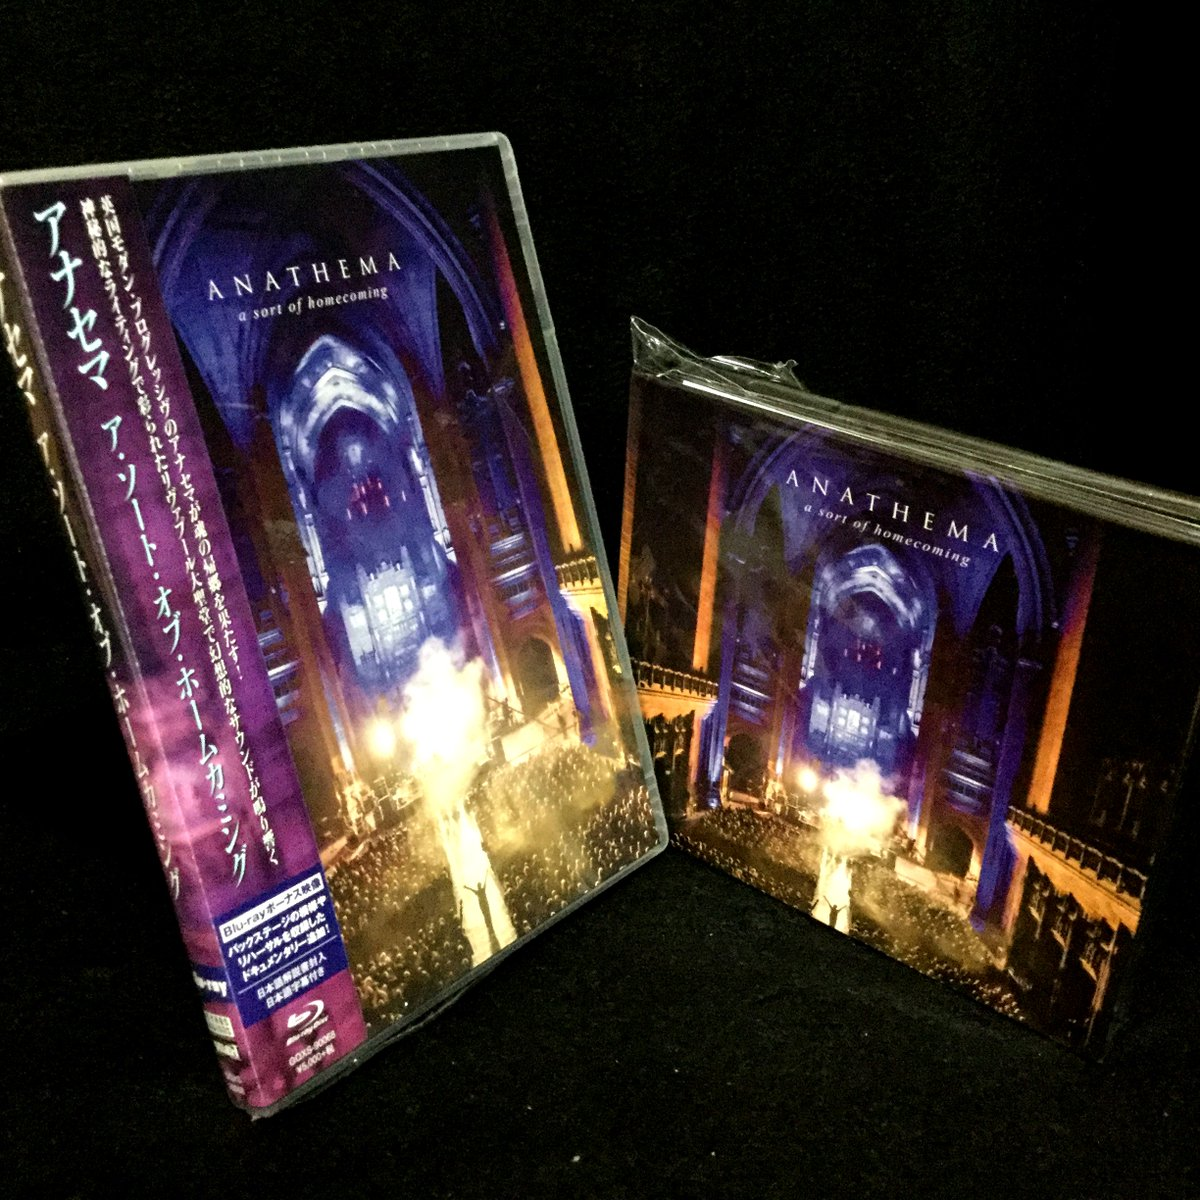 """5th ANNIVERSARY!!!!!!!!!!!!!!!!!!!!!!!!!!!!!!!!!!  ANATHEMA """"A Sort of Homecoming"""" [October 28th, 2015 JAPAN,MA,discogs / October 30th, 2015 wiki]  #ANATHEMA #ASortofHomecoming #VincentCavanagh #JohnDouglas #DanielCavanagh #LeeDouglas #JamieCavanagh #DanielCardoso https://t.co/raiFJybwPH"""